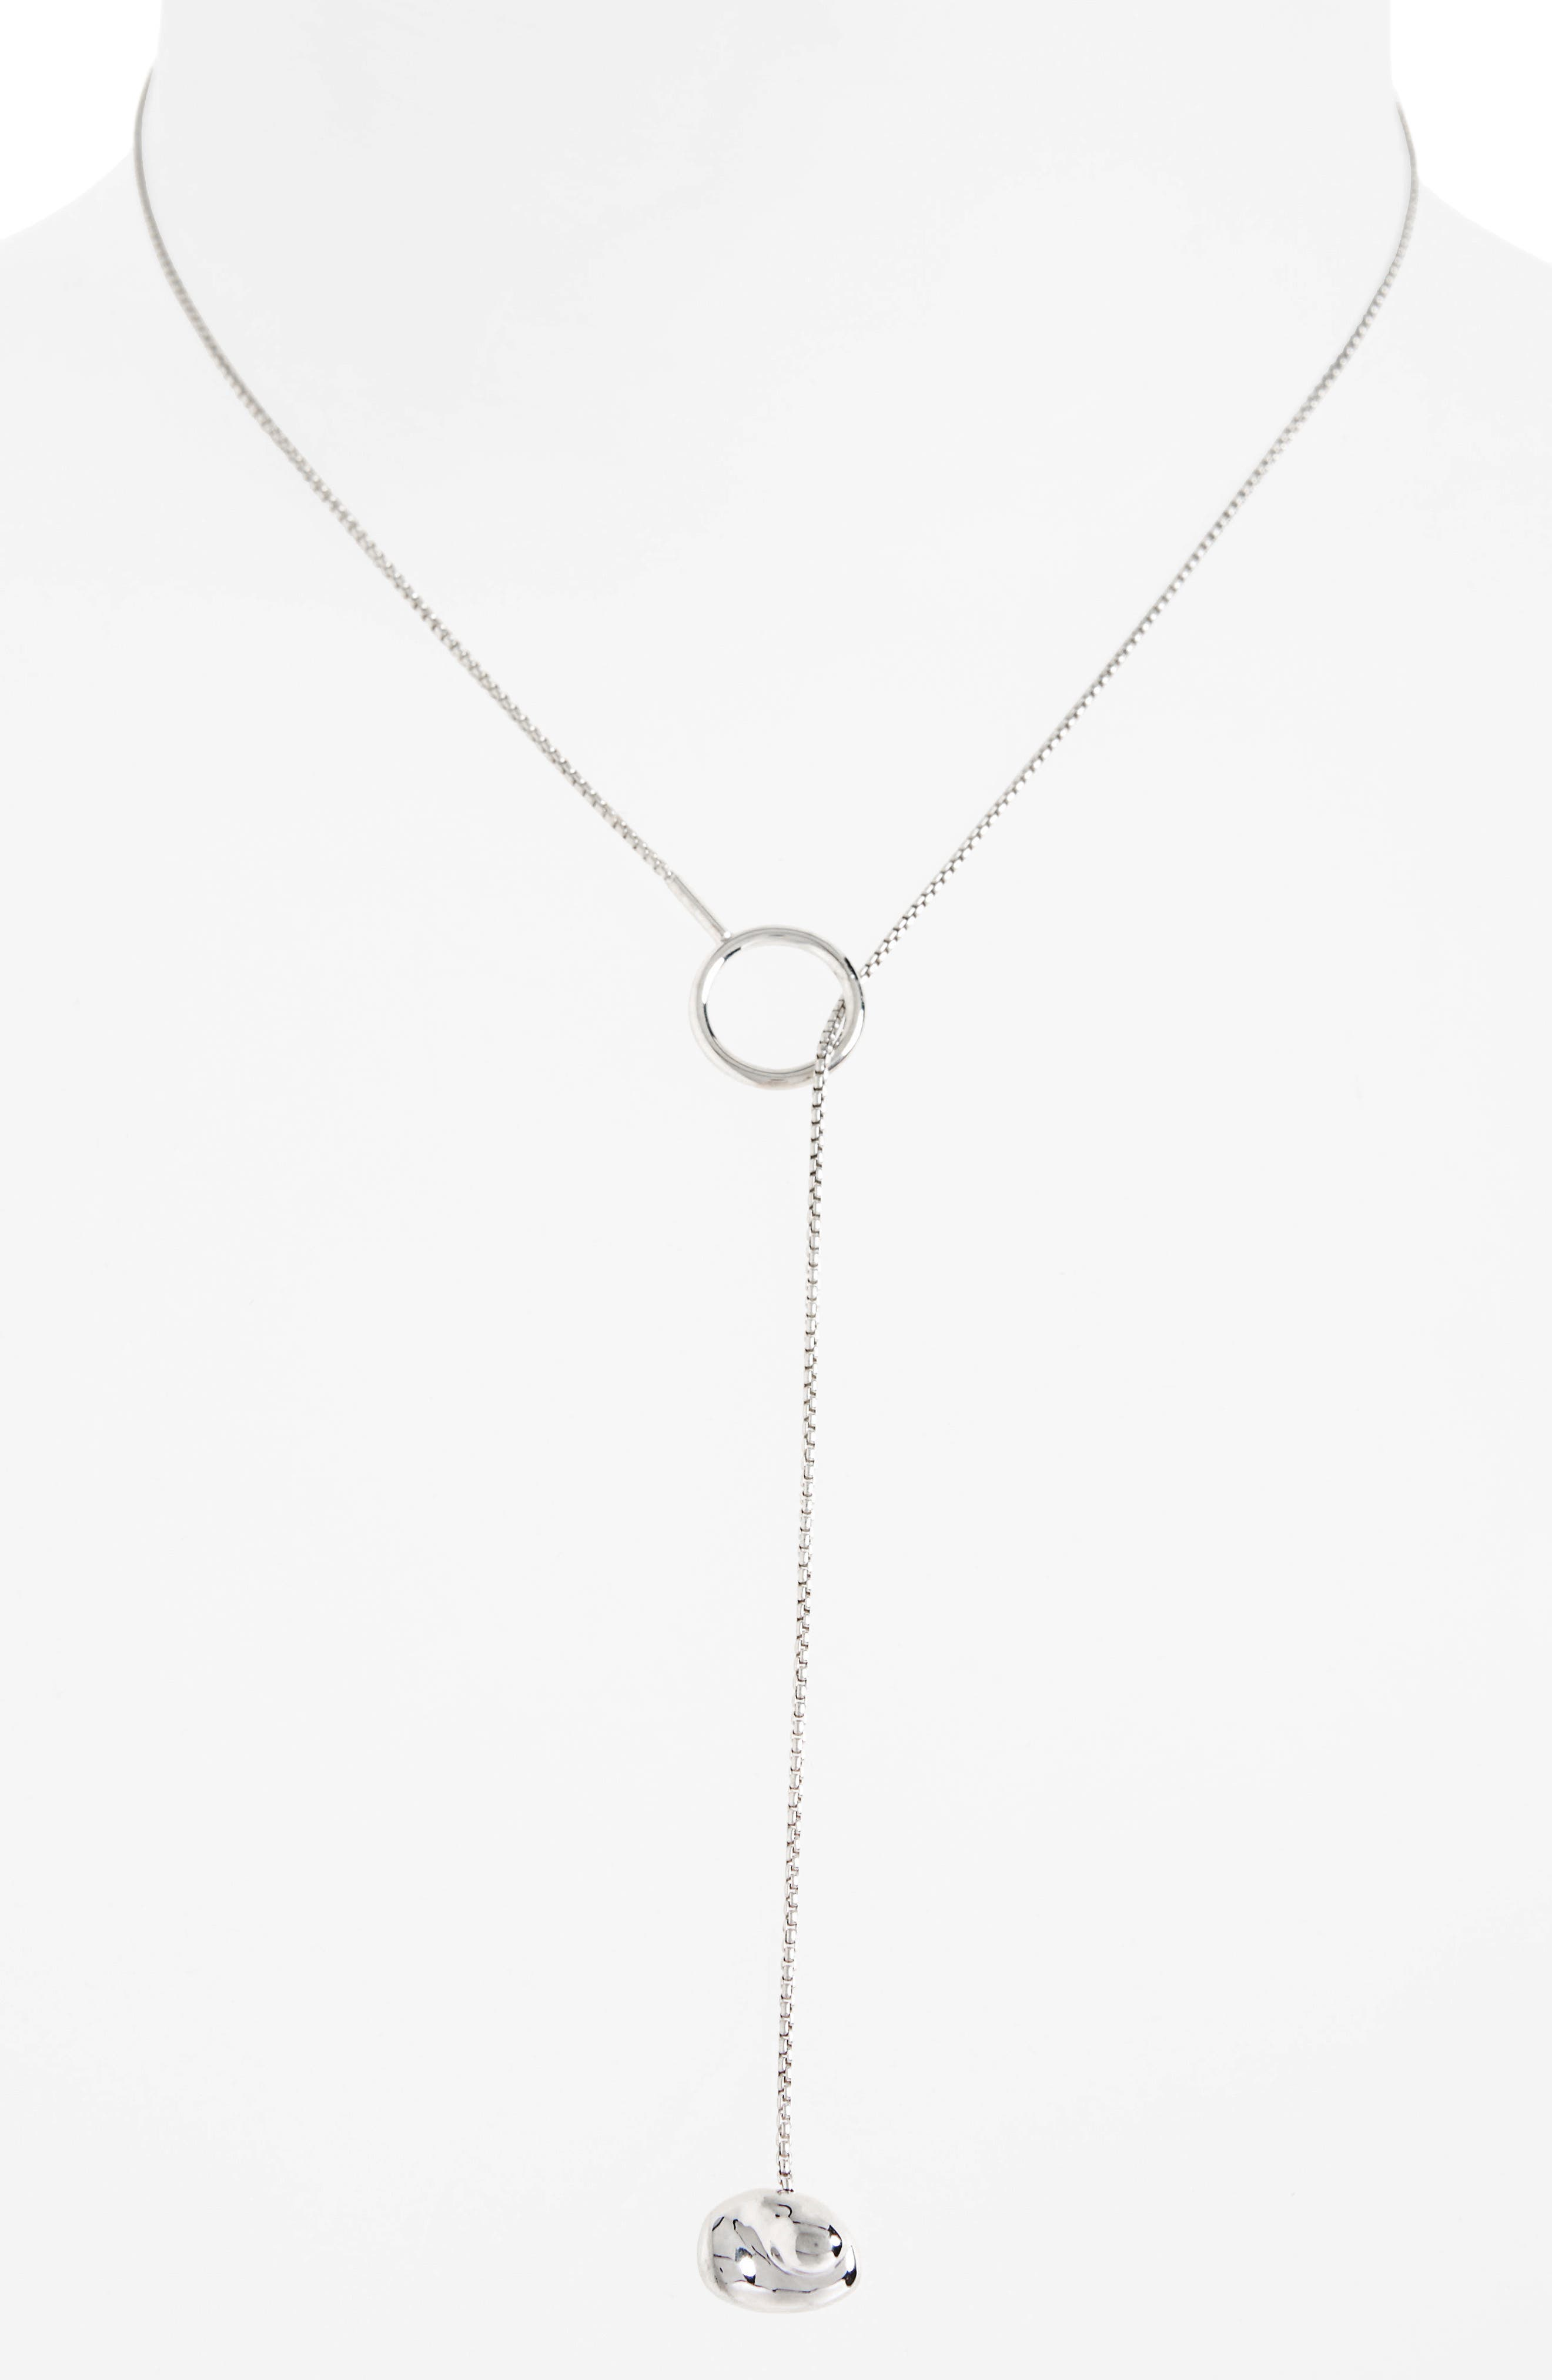 Luro Lariat Necklace,                             Alternate thumbnail 2, color,                             STERLING SILVER